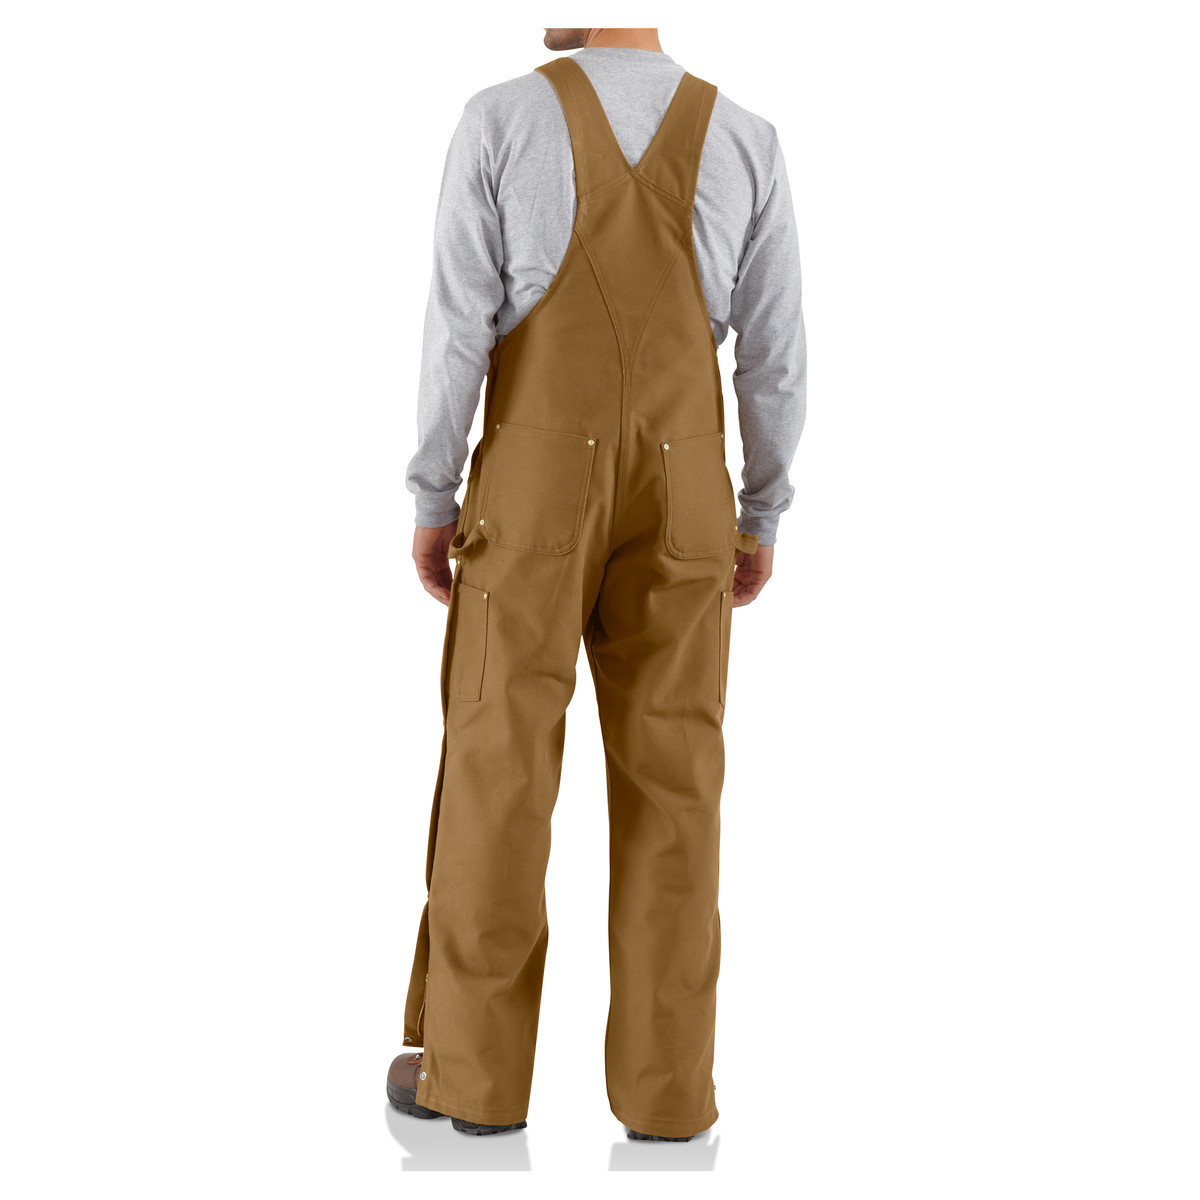 Carhartt Mens Zip To Thigh Bib Overall Unlined R37